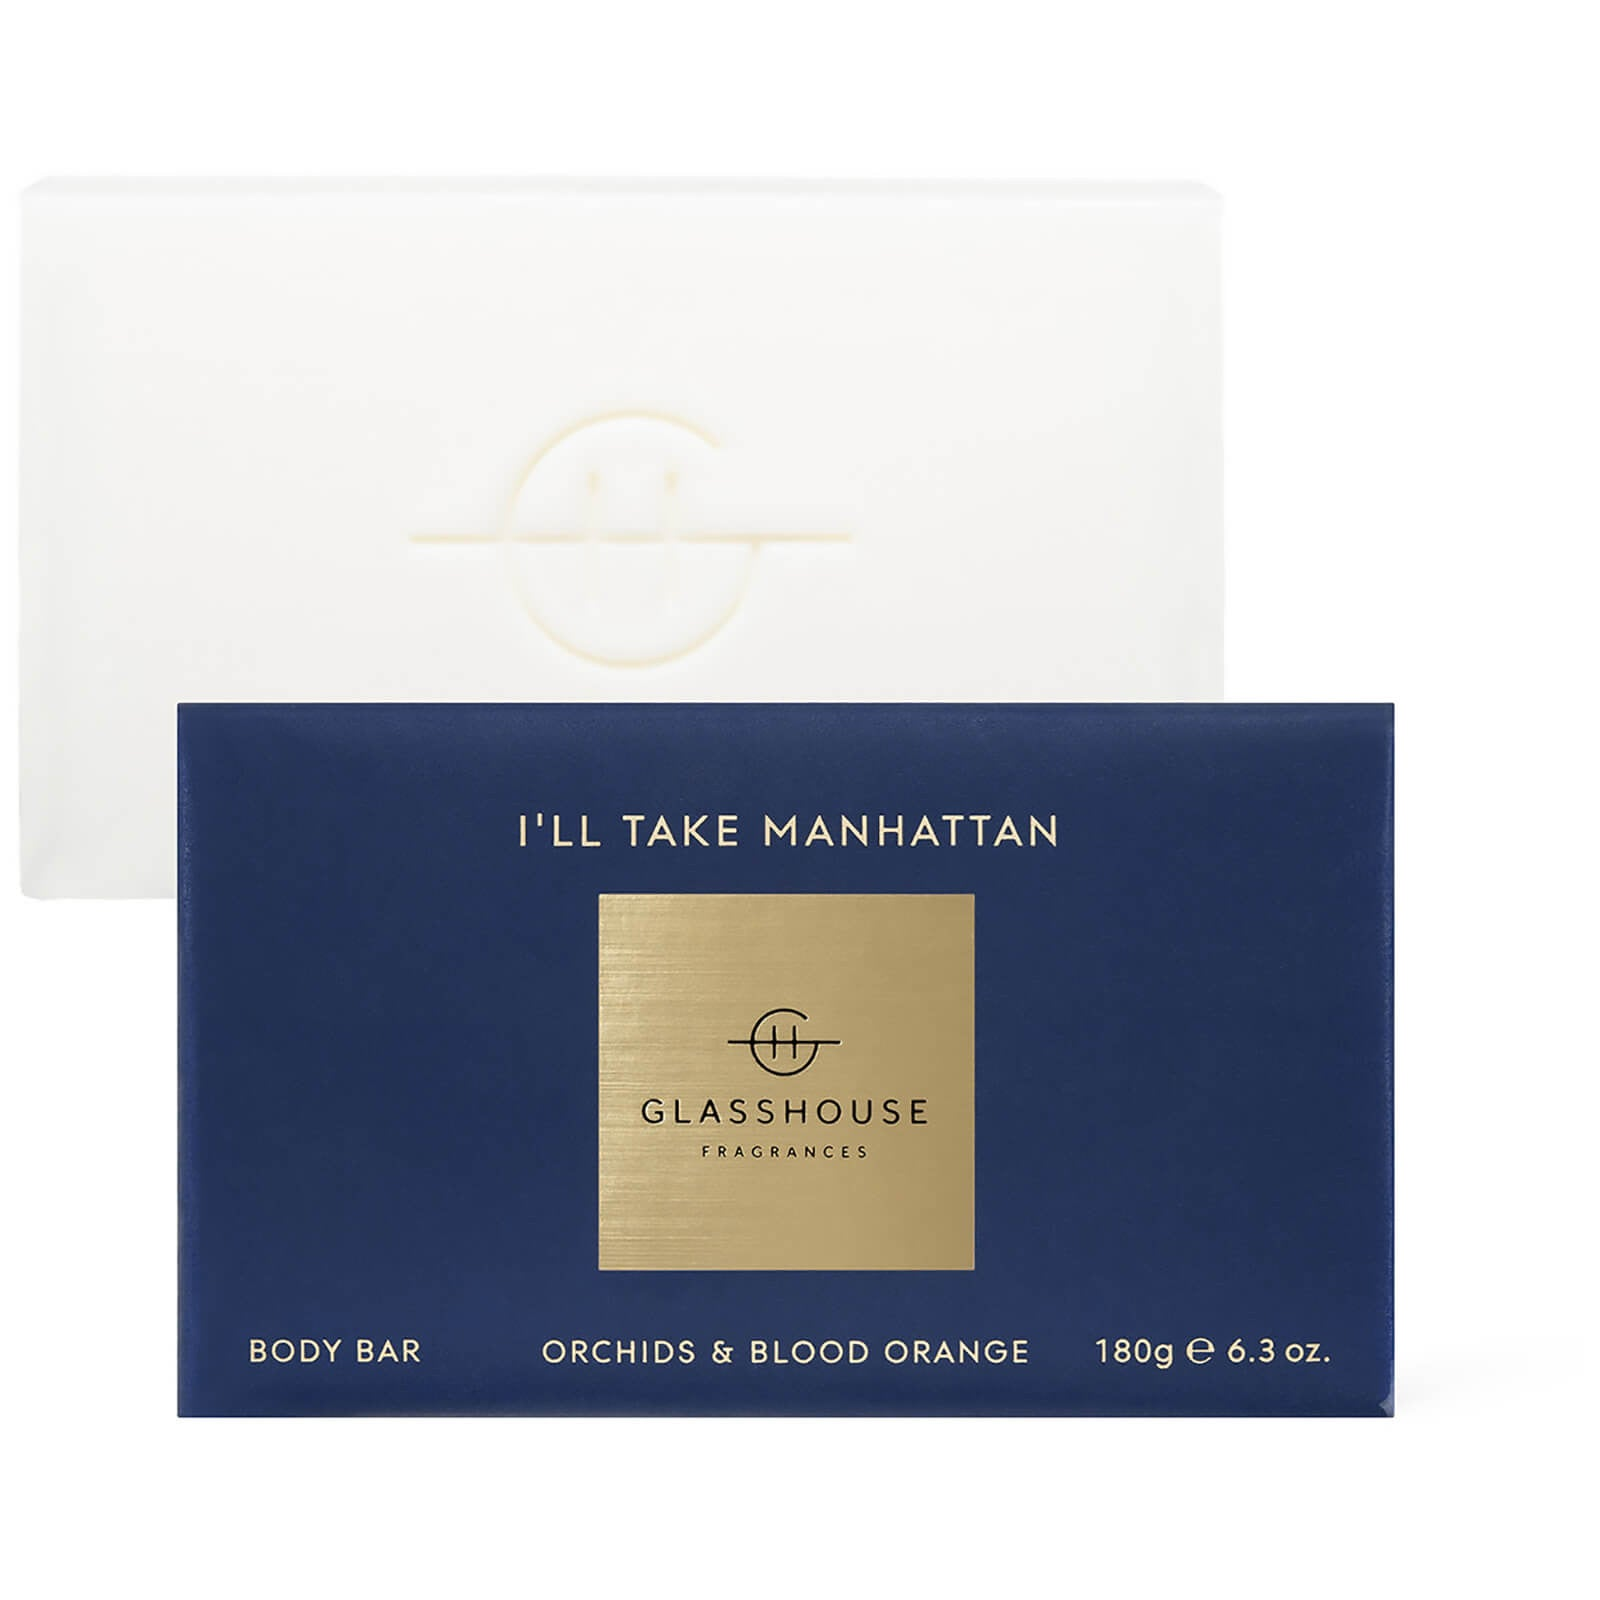 I'LL TAKE MANHATTAN - BODY BAR 180g